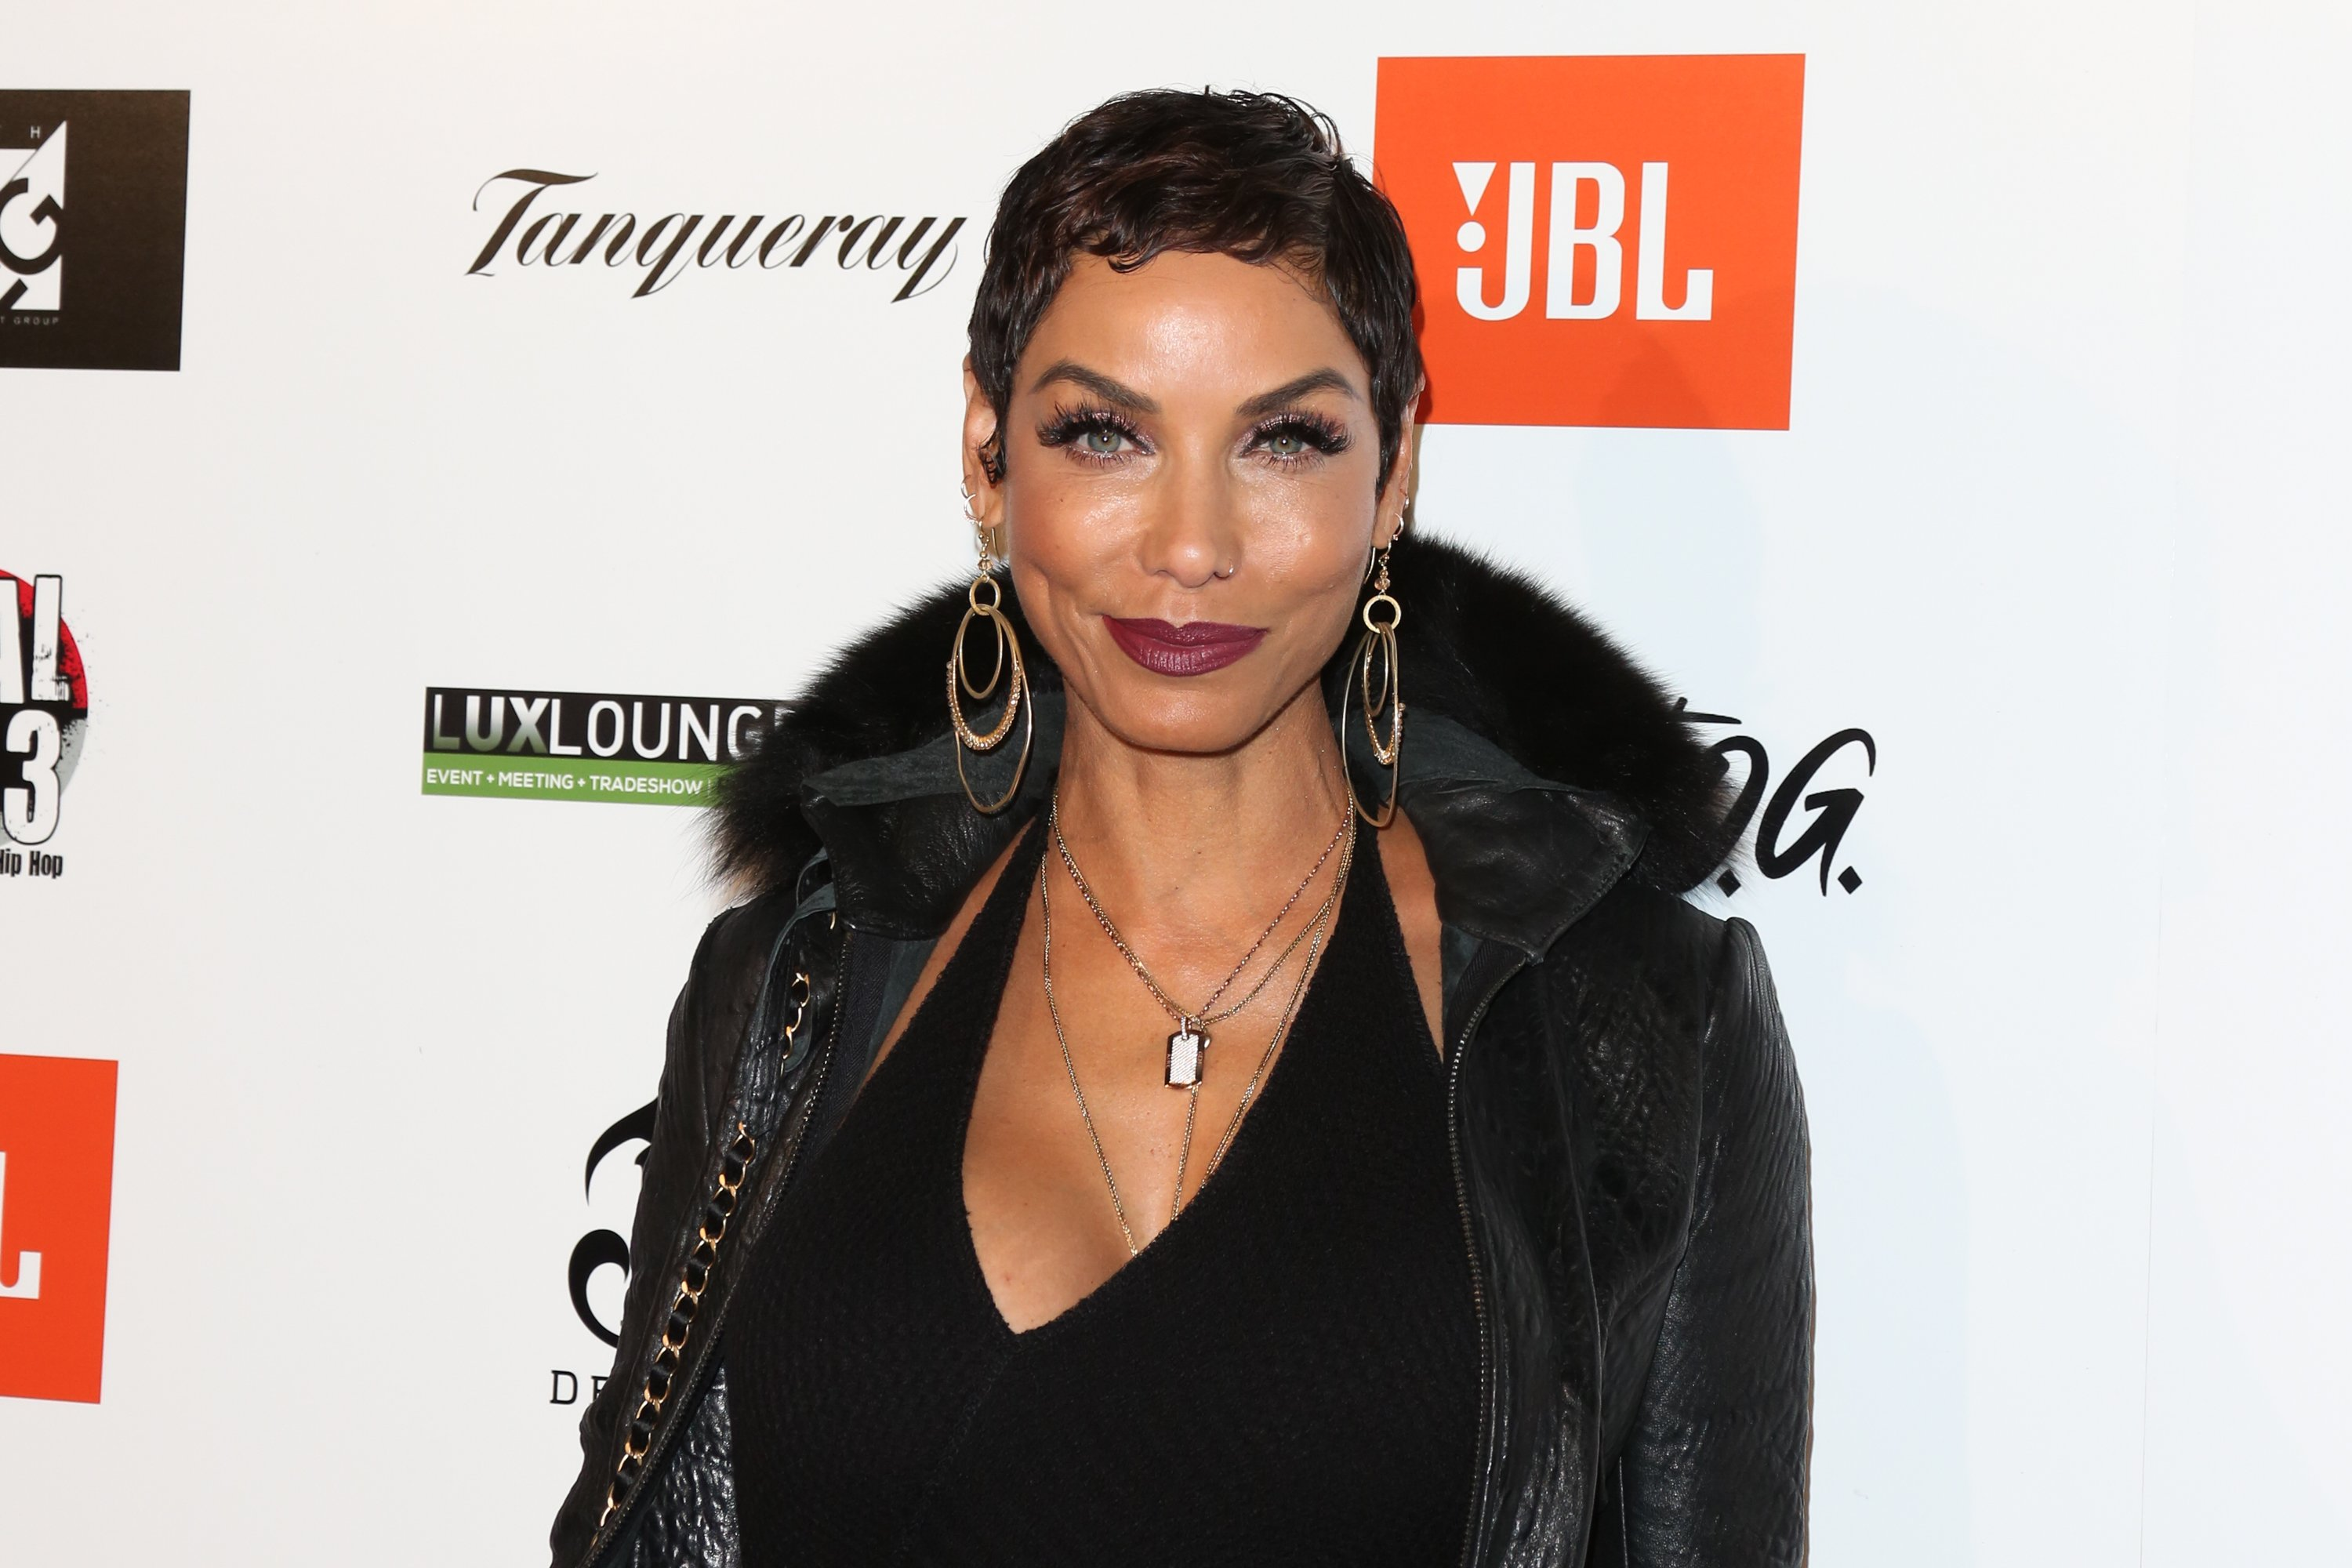 Nicole Murphy attending a JBL all-star bash in February 2018. | Photo: Getty Images/GlobalImagesUkraine